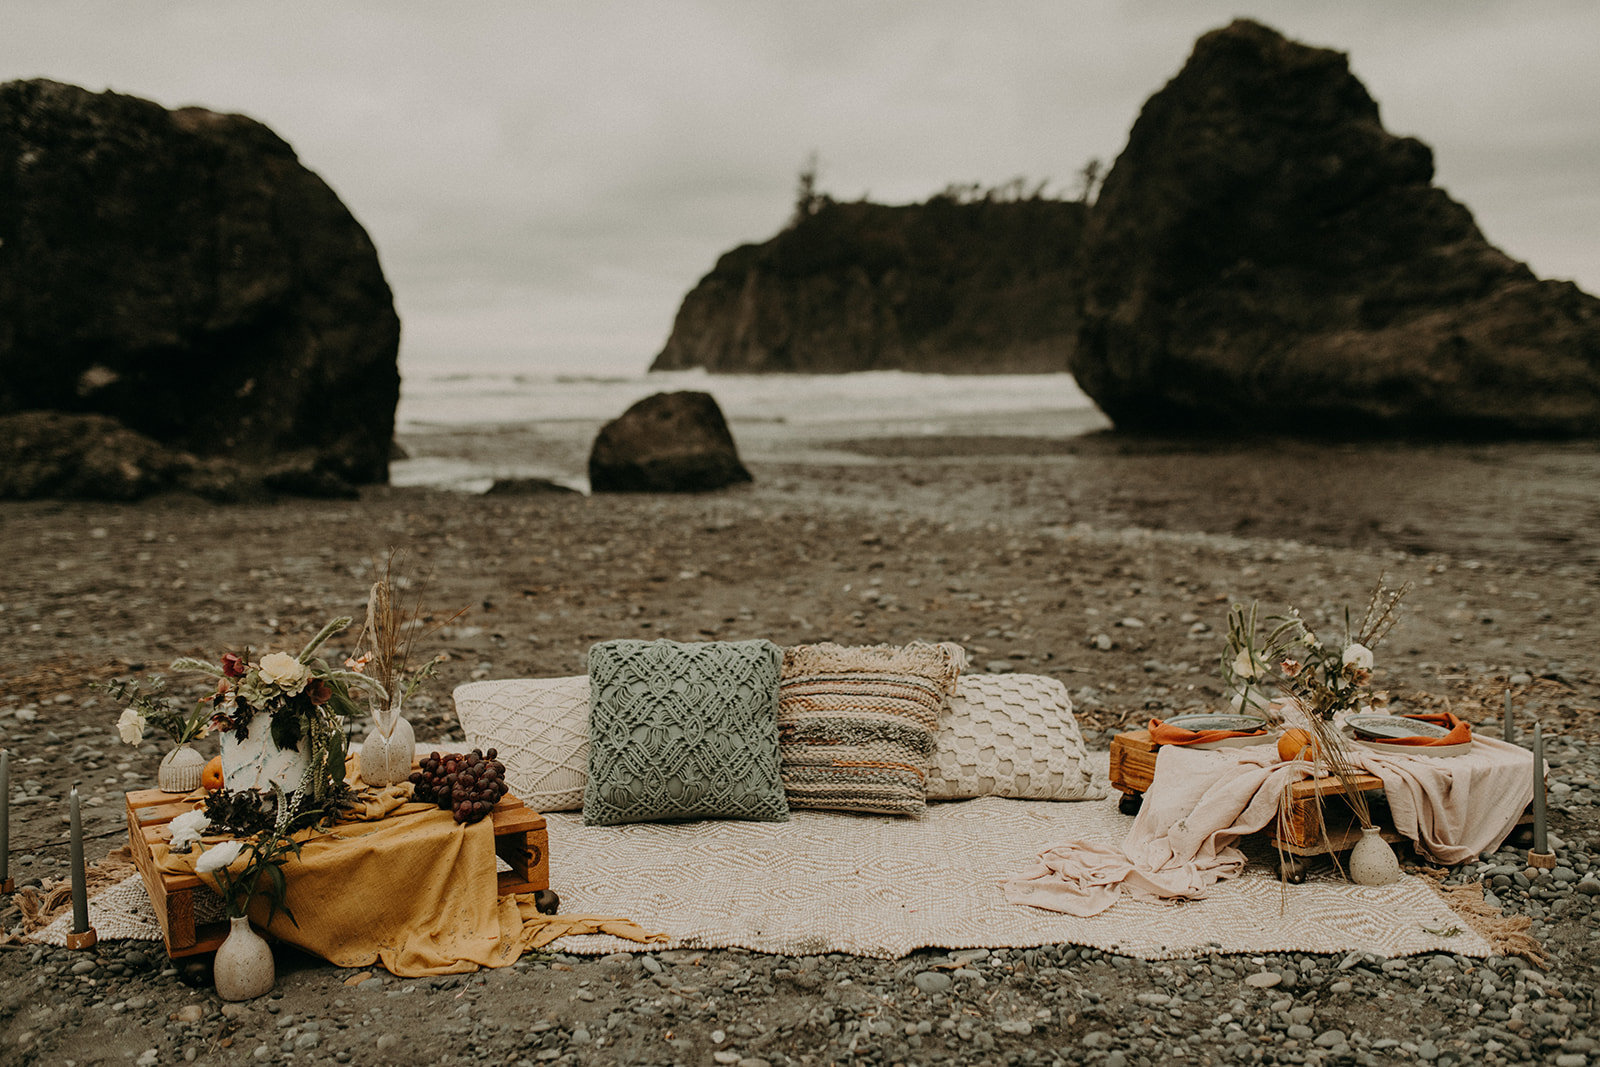 Ruby_Beach_Styled_Elopement_-_Run_Away_with_Me_Elopement_Collective_-_Kamra_Fuller_Photography_-_Details-43